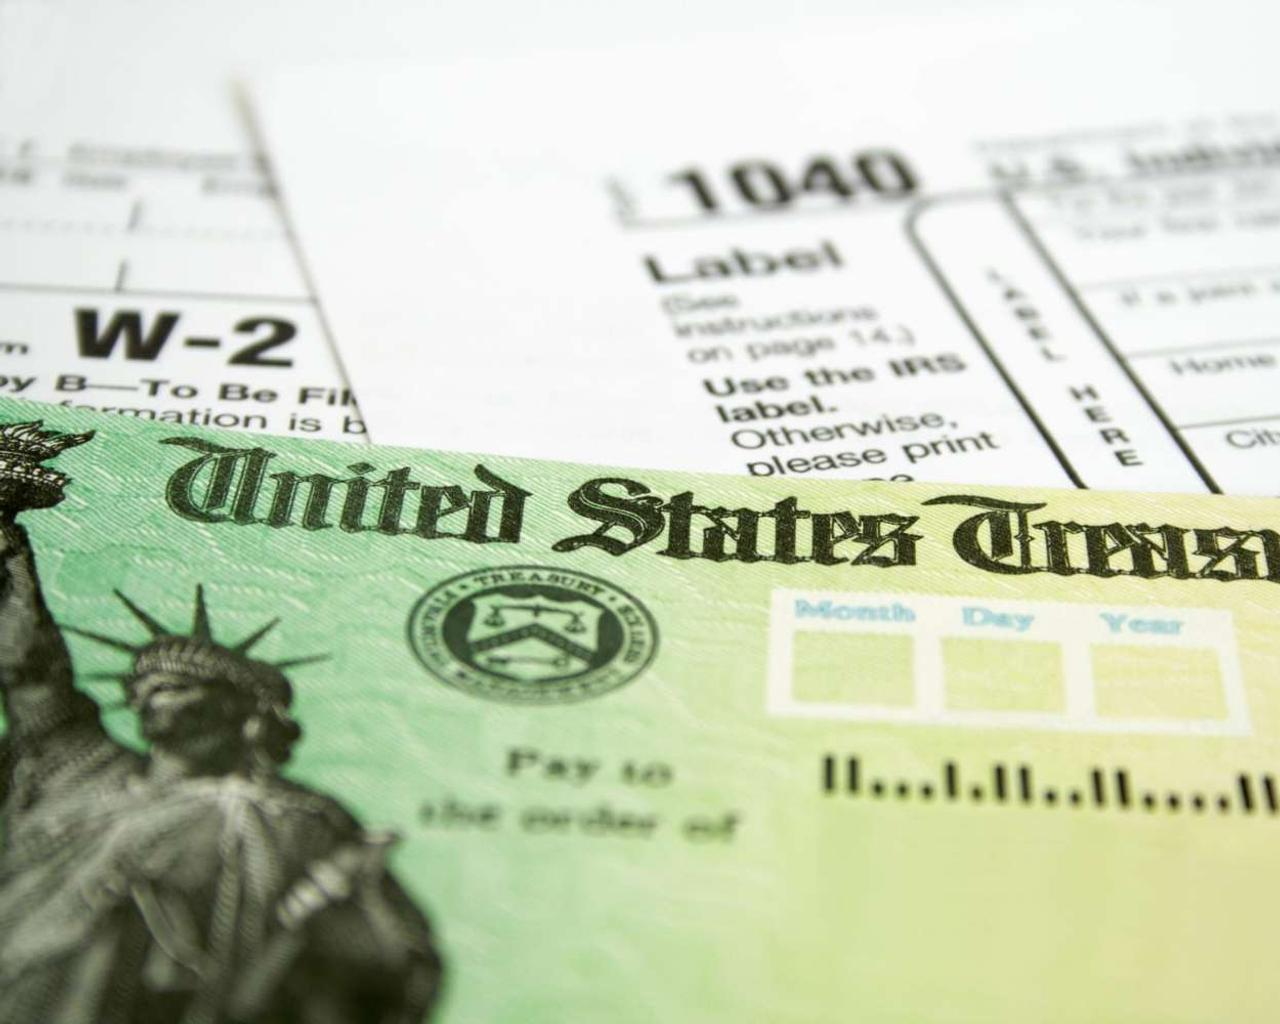 Still you don't have your stimulus check? Here are some solutions to track yours.